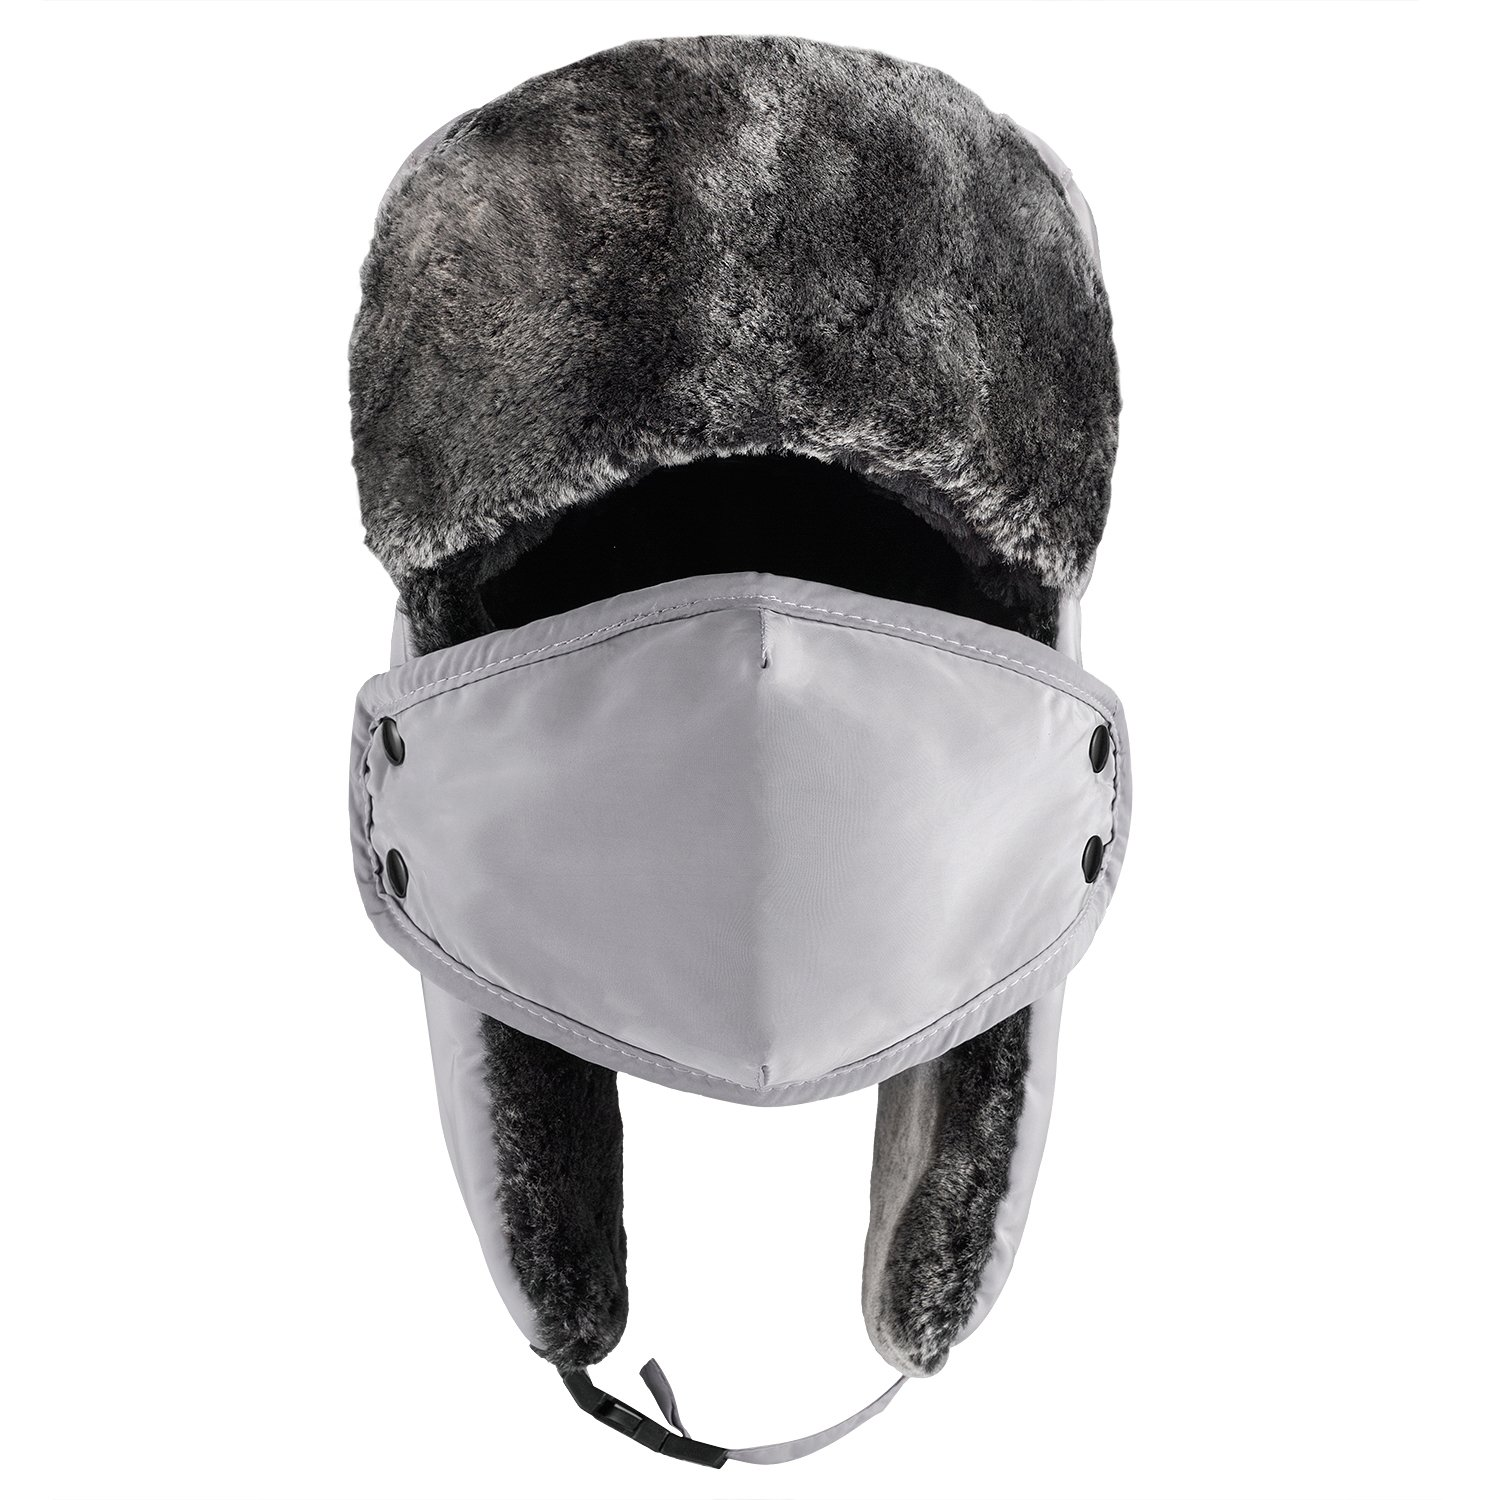 Mysuntown Unisex Winter Trooper Hat Hunting Hat Ushanka Ear Flap Chin Strap  and Windproof Mask(Gray Color) - CAP005GY   Hats   Sports   Outdoors - tibs 2335b3868c06